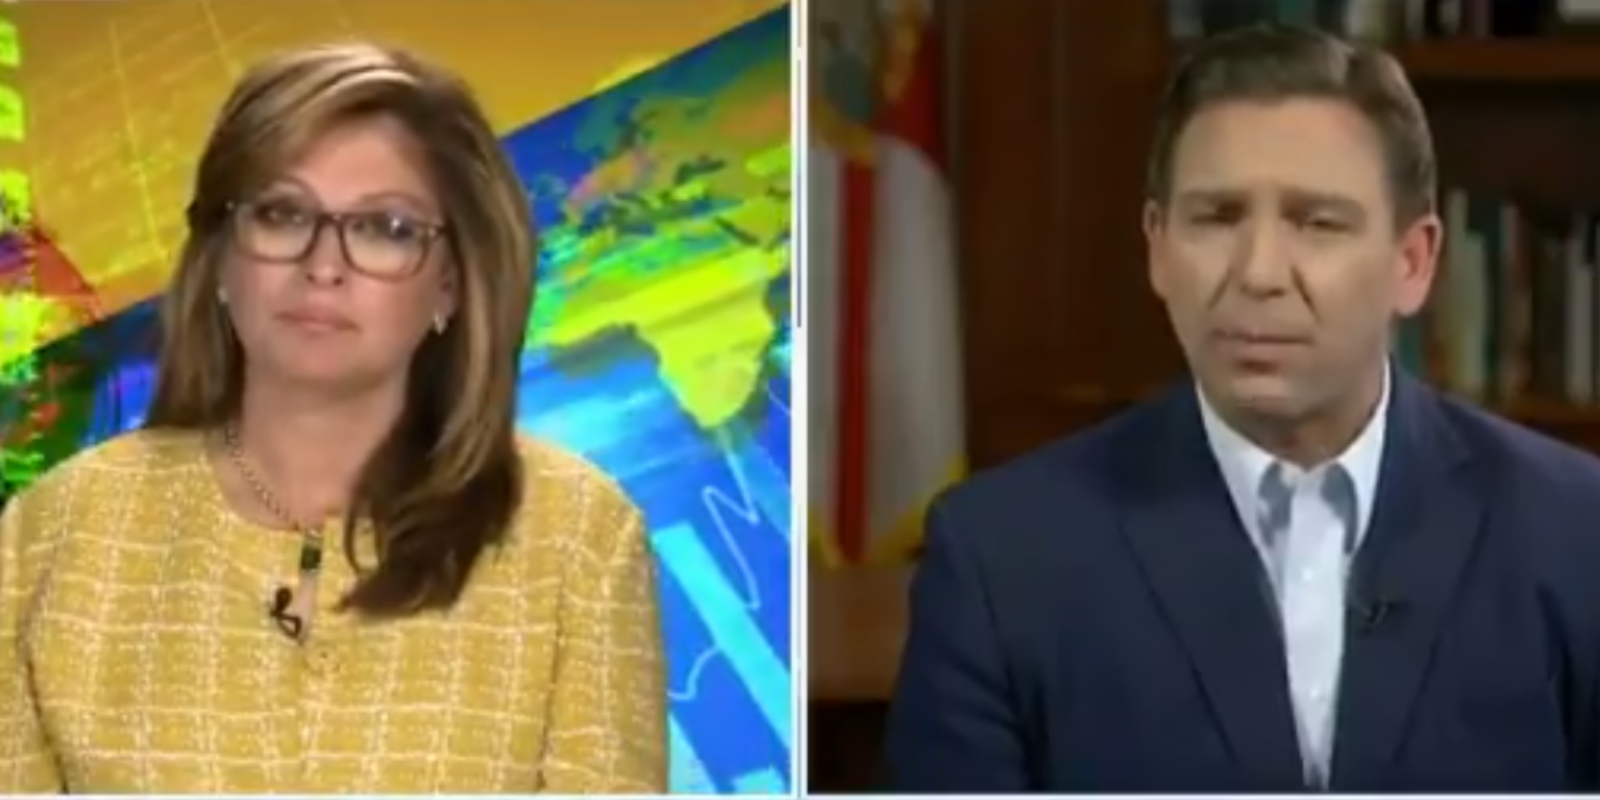 WATCH: Gov. DeSantis says Biden's performance at G7 summit 'played well with European elites' but neglected middle America